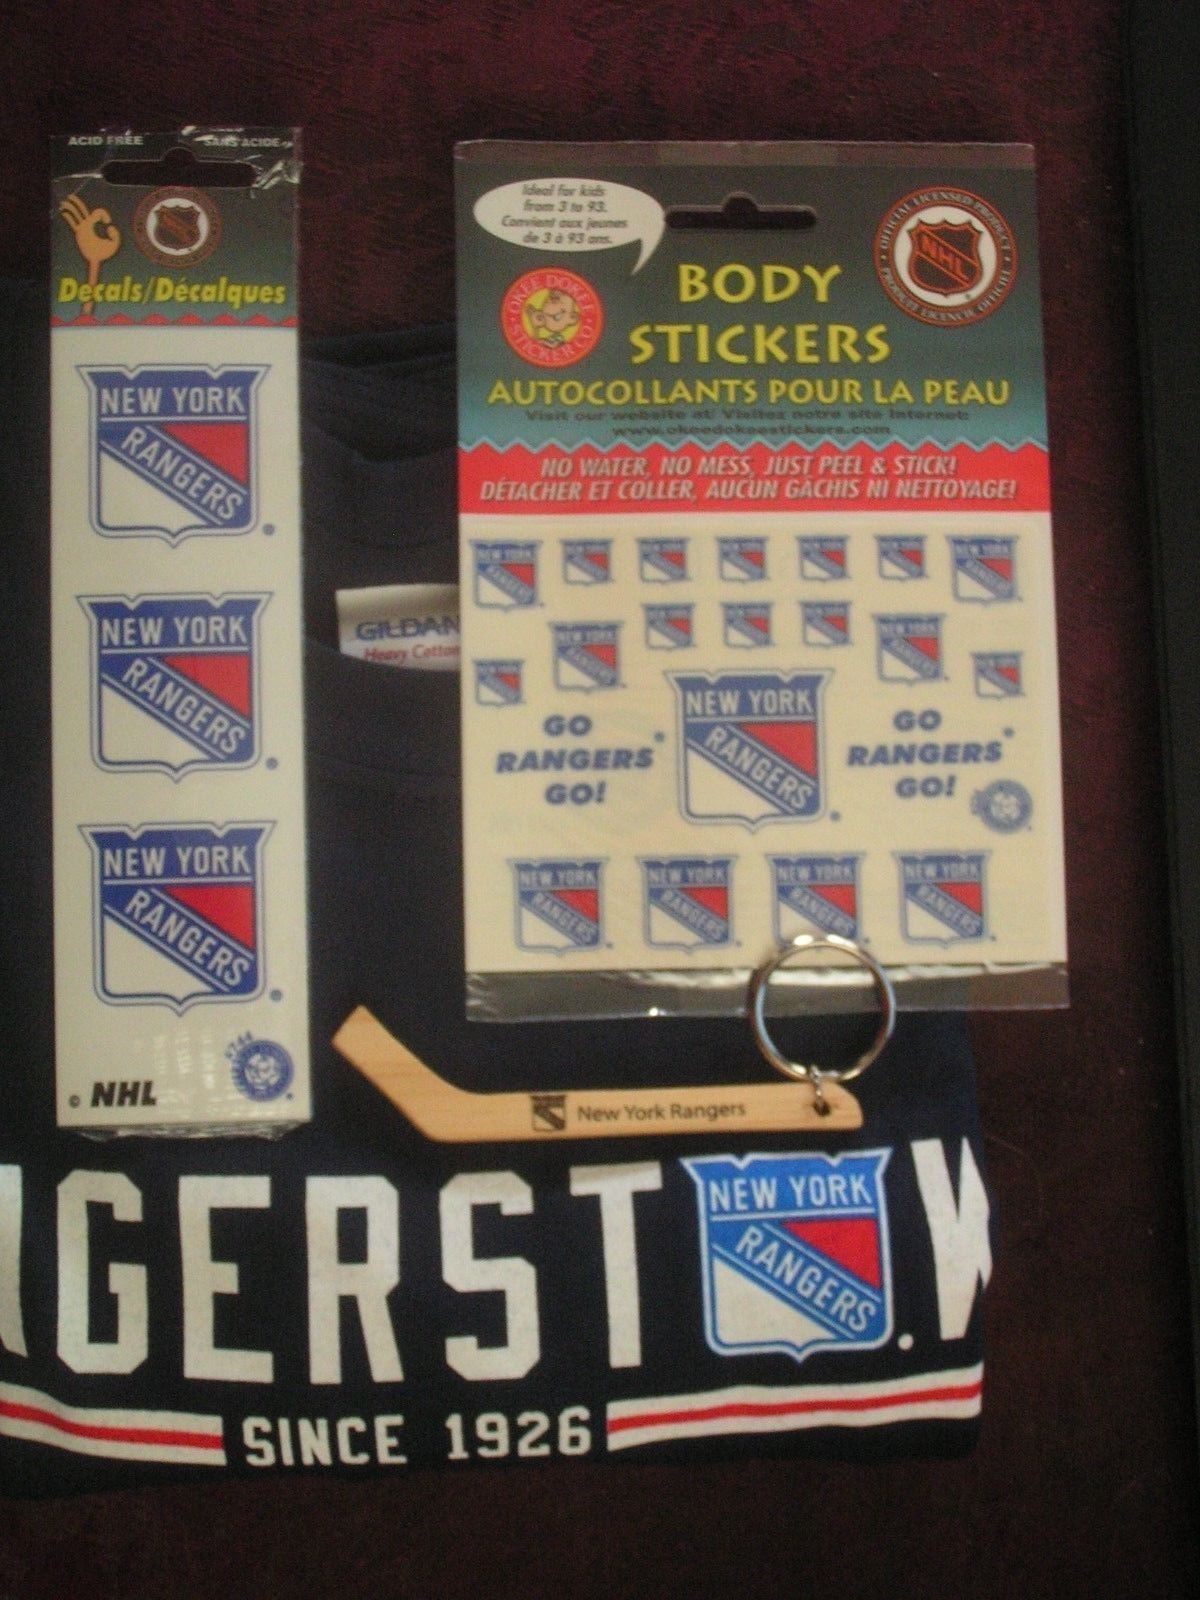 Primary image for NHL New York Rangers Men's XL Shirt, Key Chain, 3 Decals & Body Stickers Lot